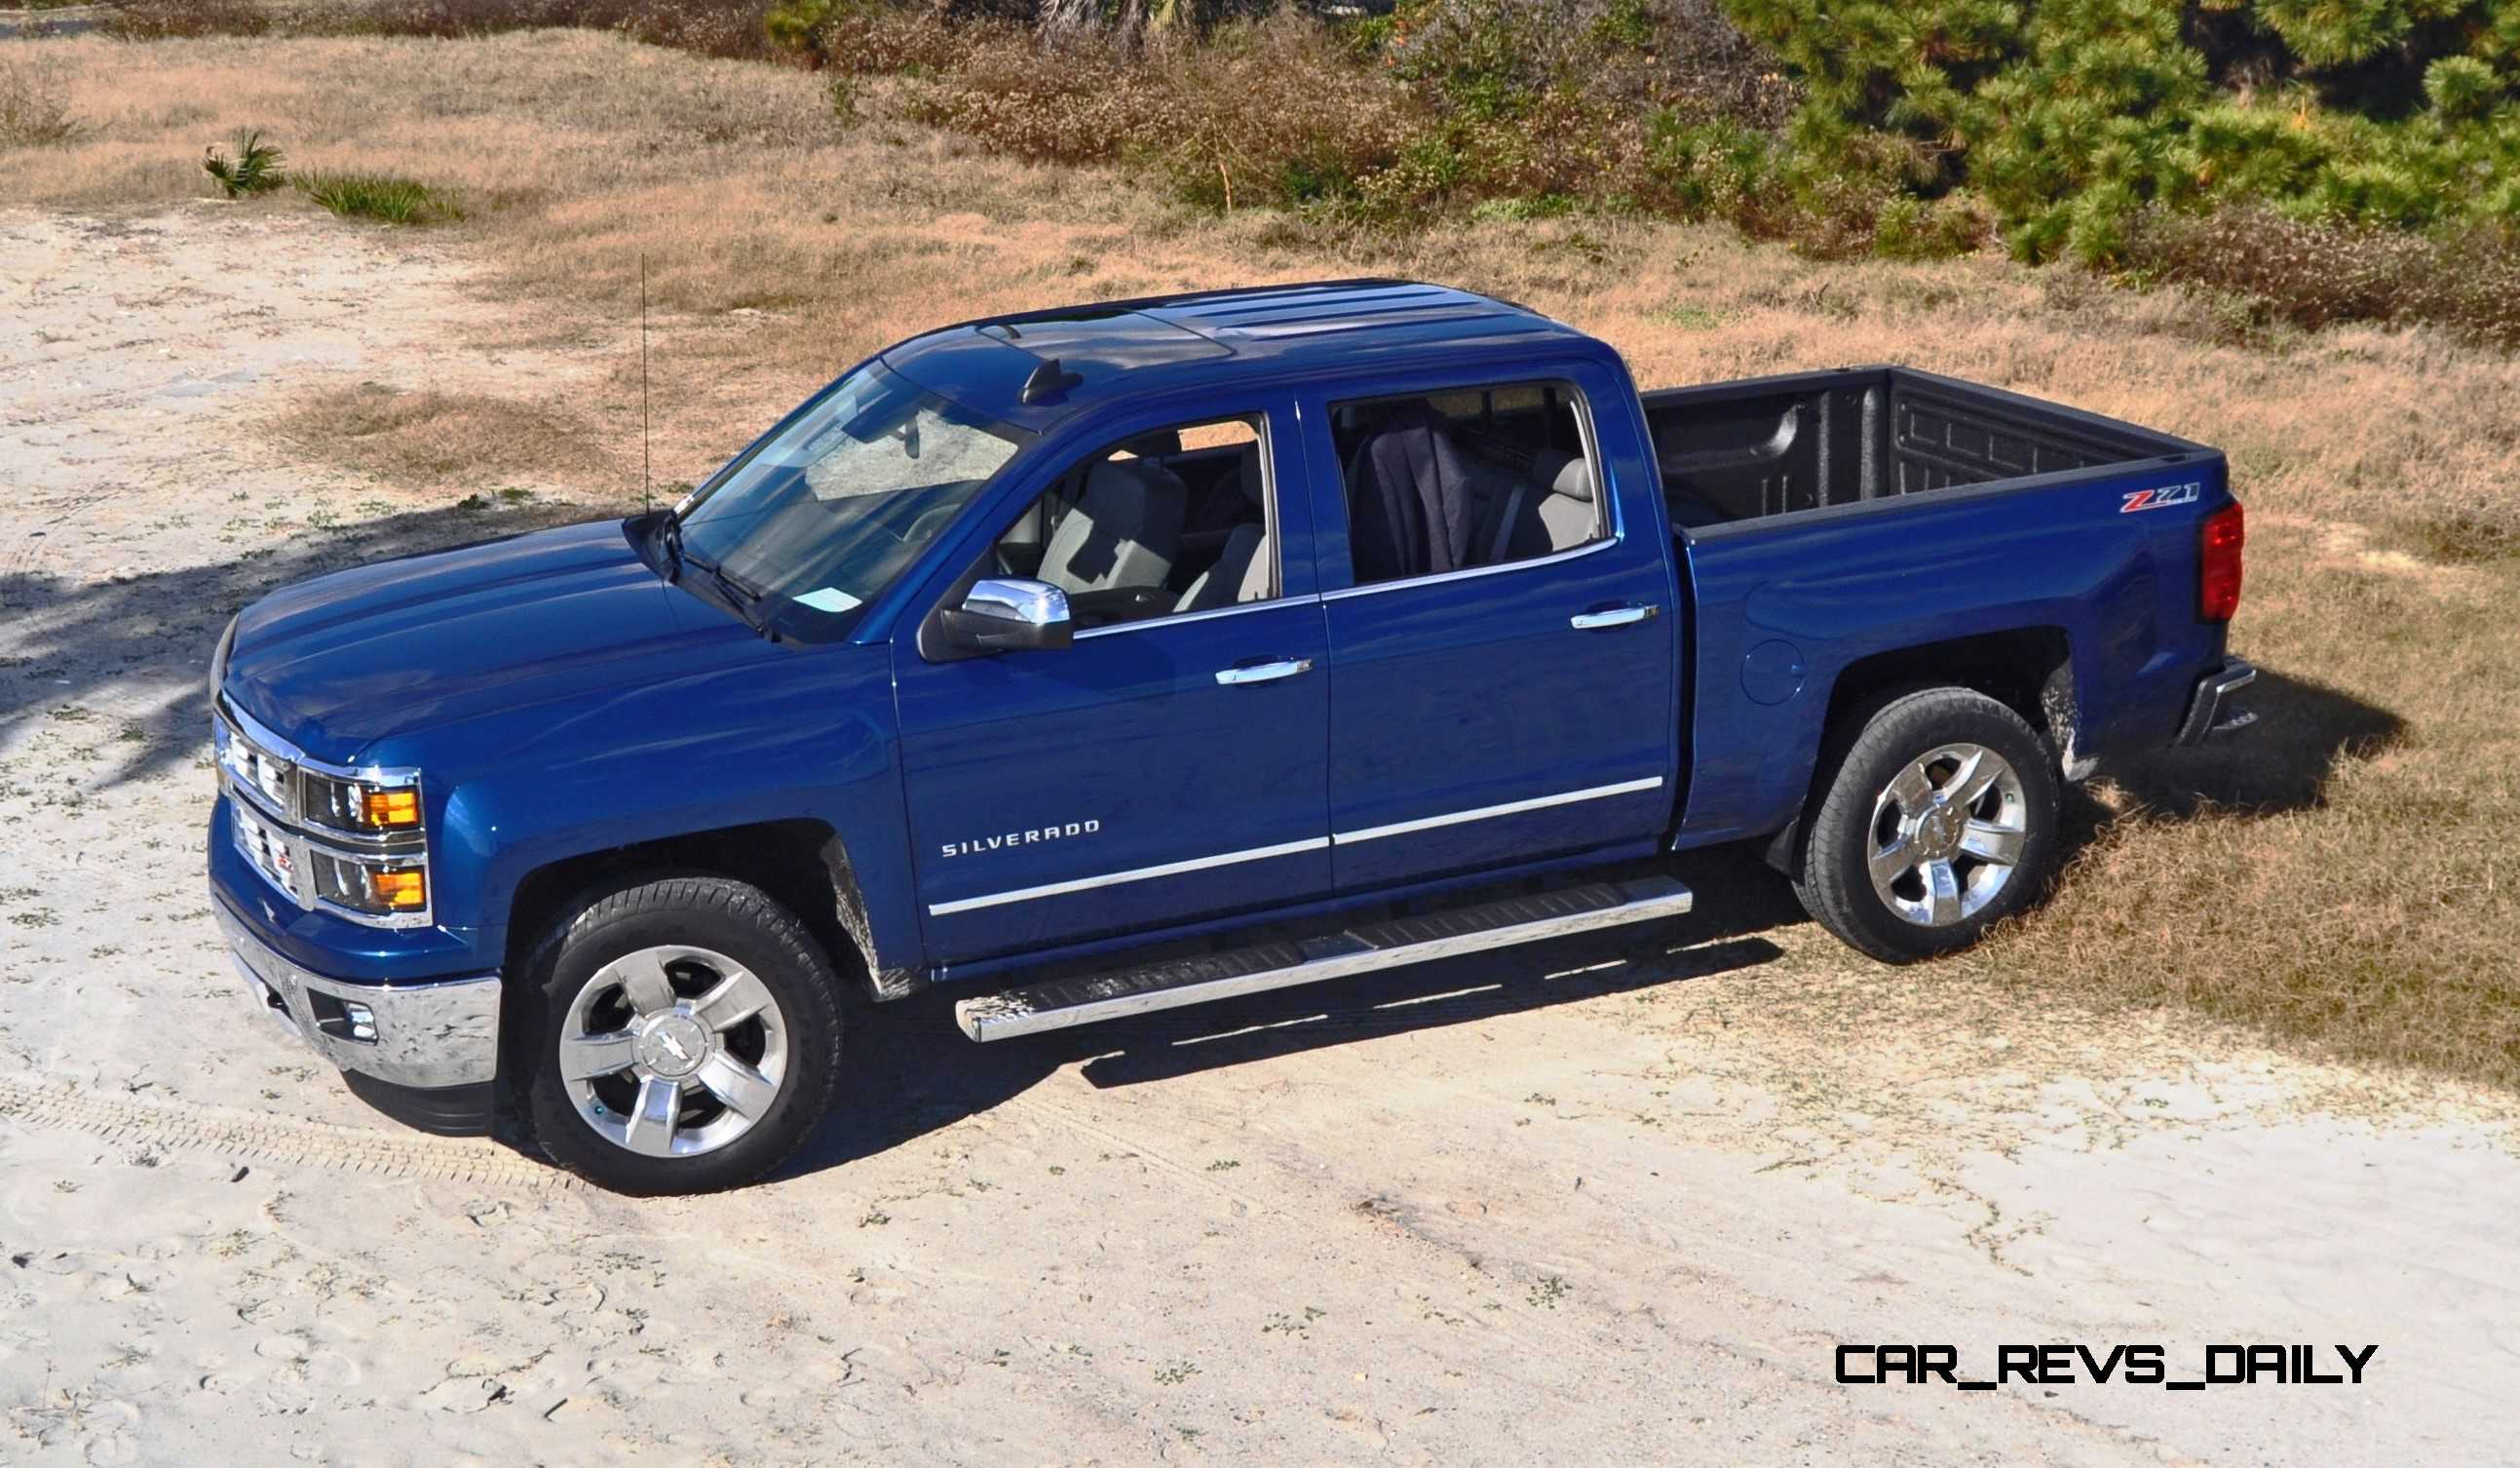 ... Review – 2015 Chevrolet Silverado 1500 Z71 is 200k-Mile, 2025 TOTY